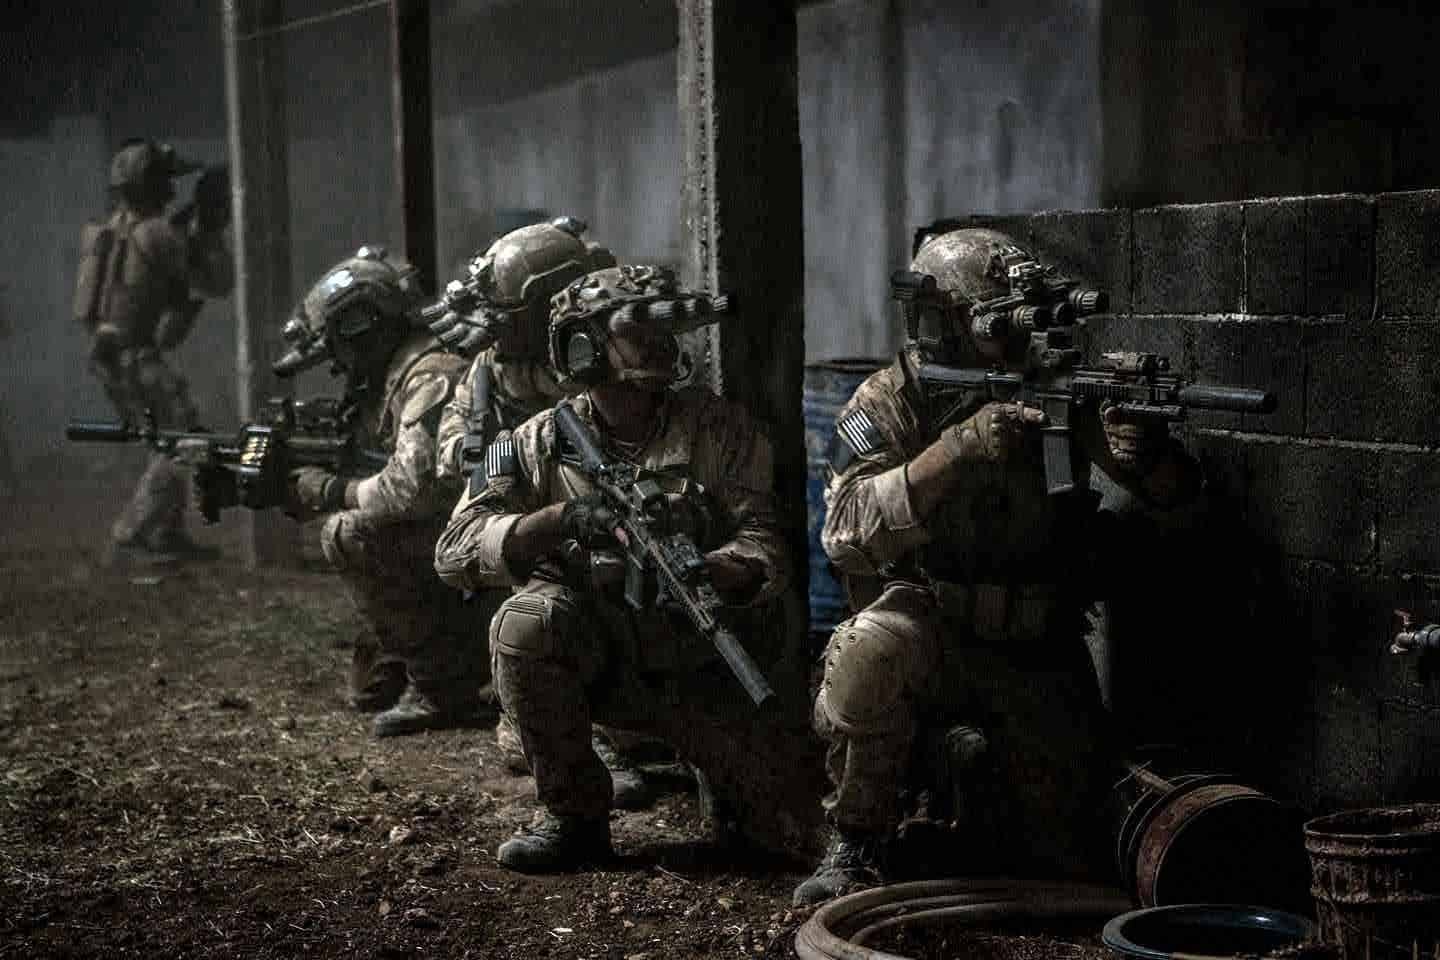 Zero Dark Thirty: Glorifying imperialist stunts. Hollywood blockbusters marketed as entertainment are actually pure indoctrination artifacts. This type of movie is now commonplace.